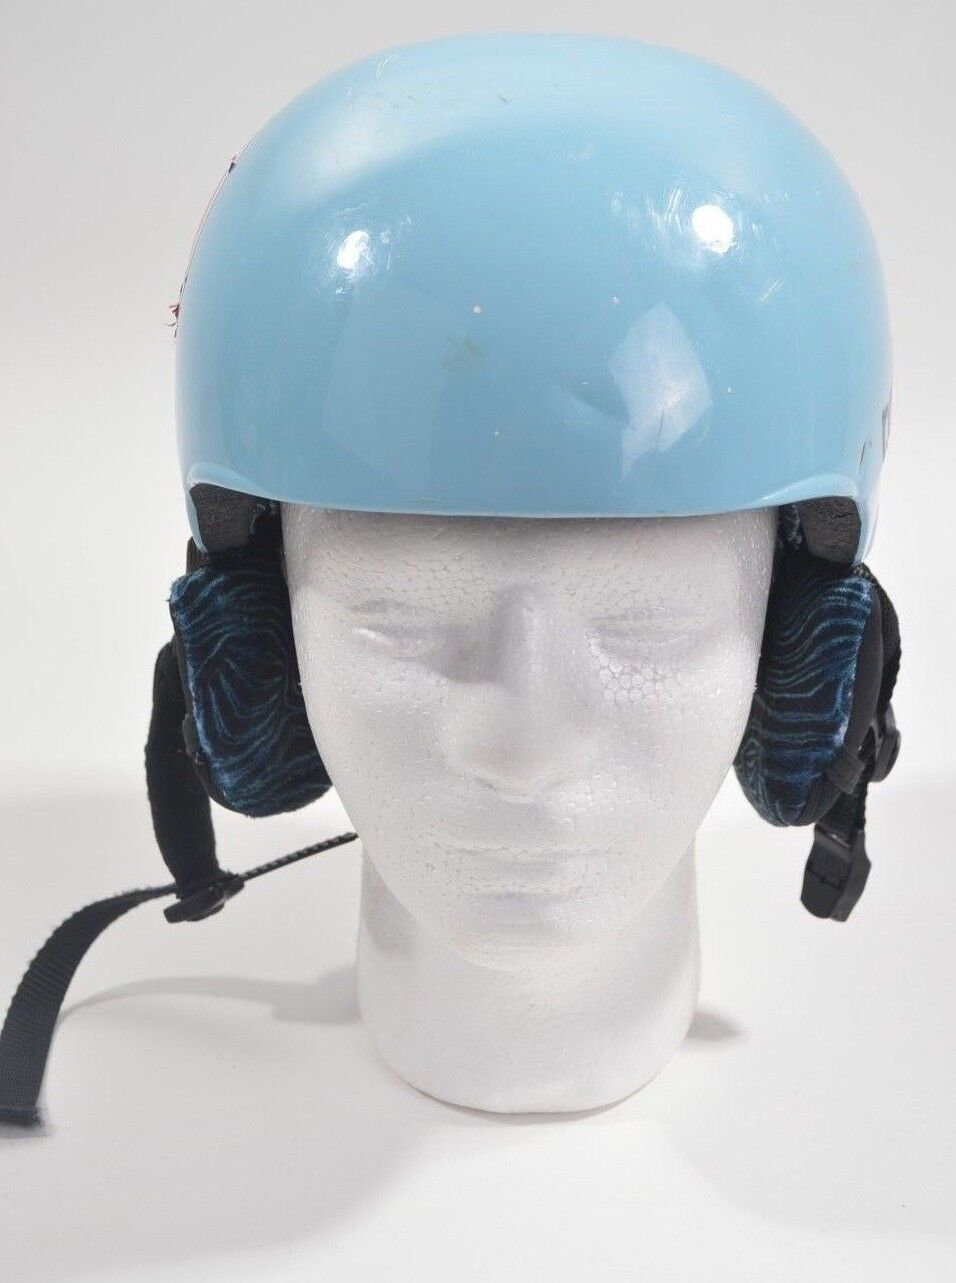 2009 WOMENS RED HIFI SNOWBOARD HELMET  S light blueee USED hard shell ski